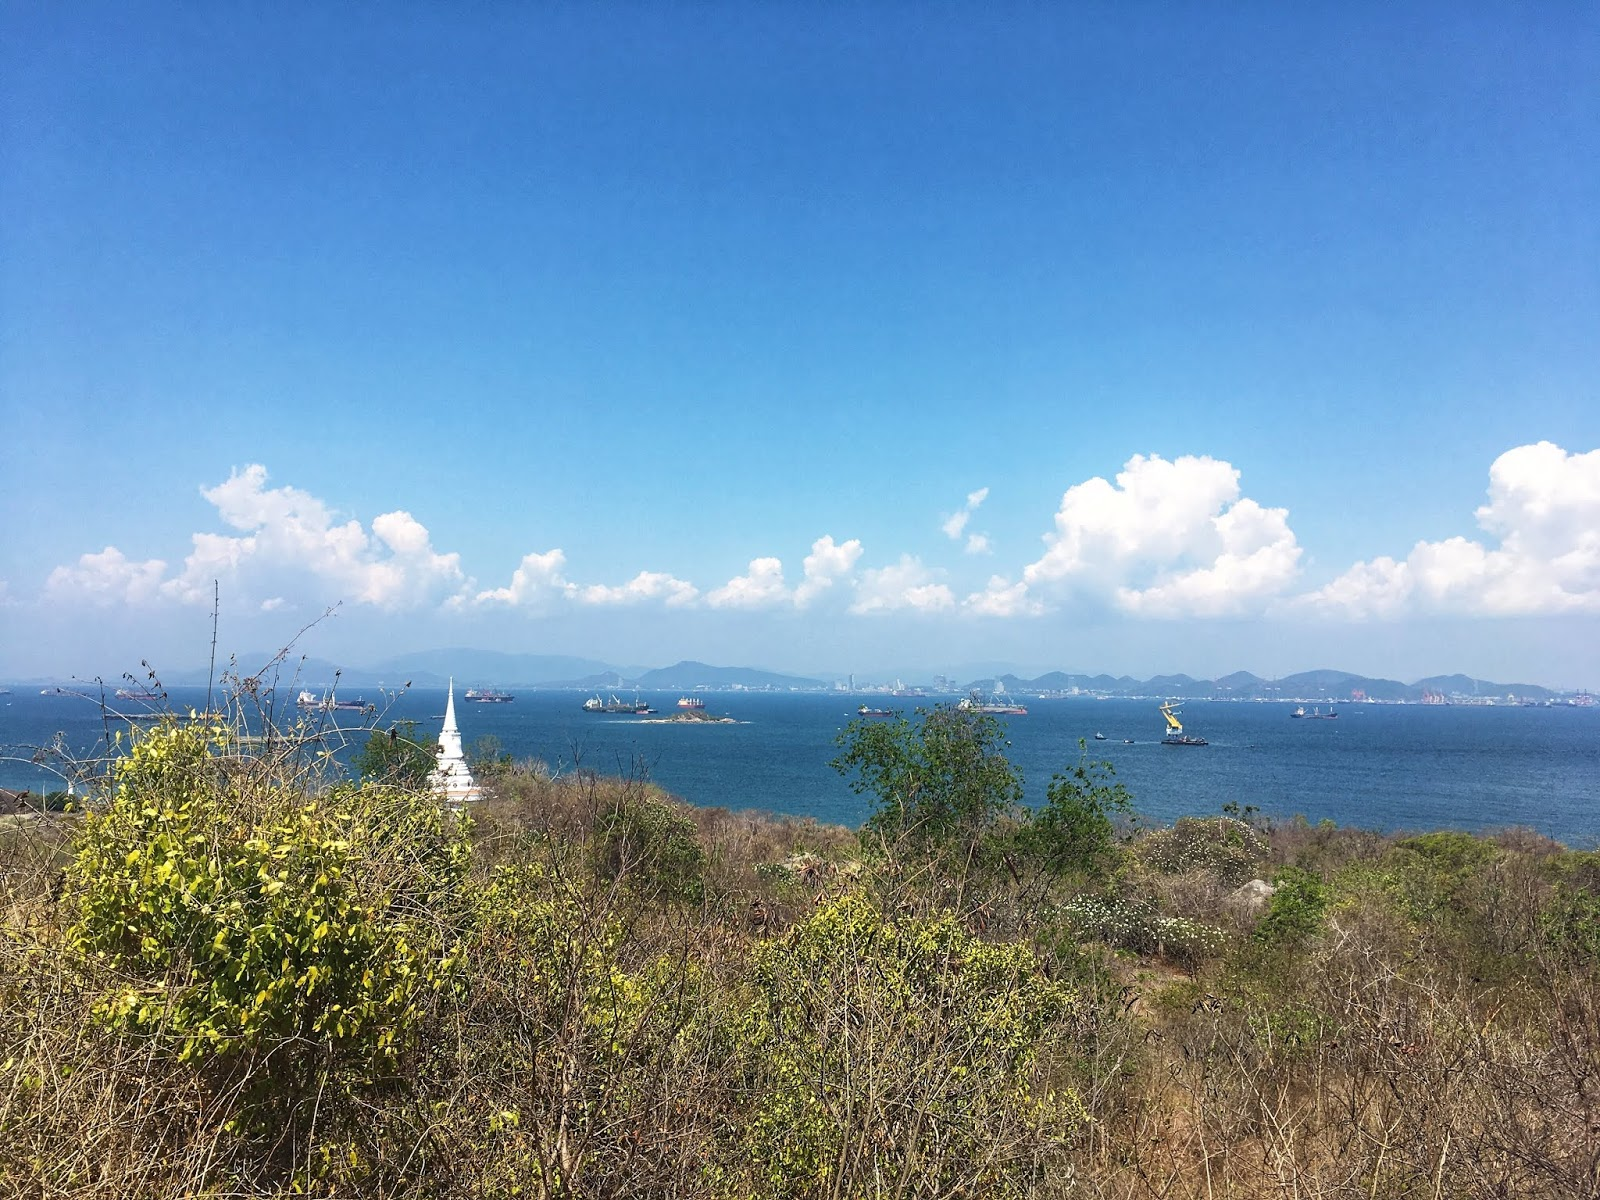 the viewpoint on Koh Sichang, Thailand with views of the sea and boats